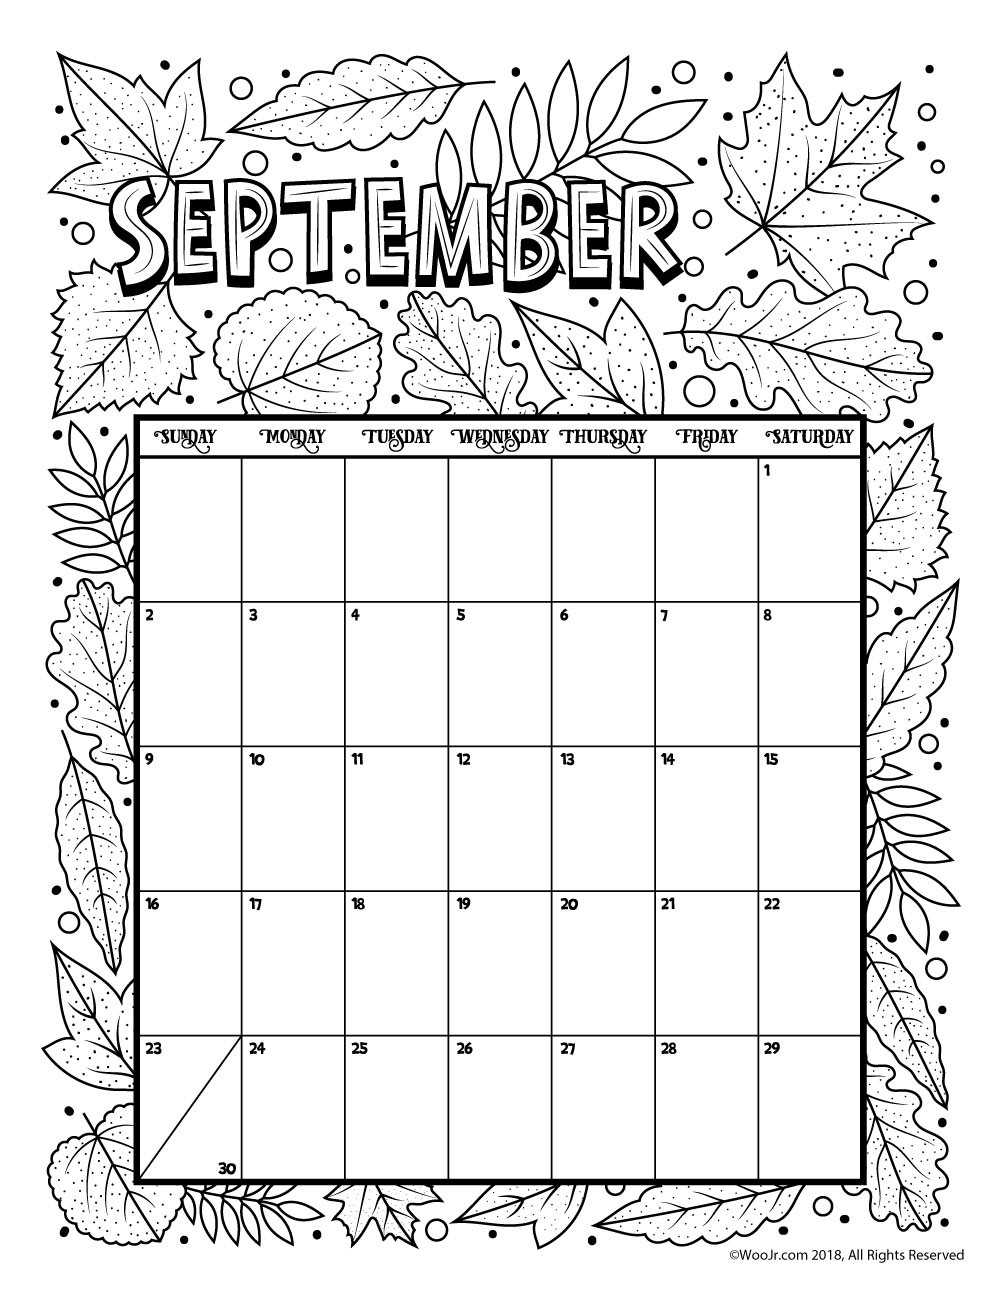 Coloring : September Coloring Pages Luxury Printable with Printable Coloring 2020 Monthly Calendar